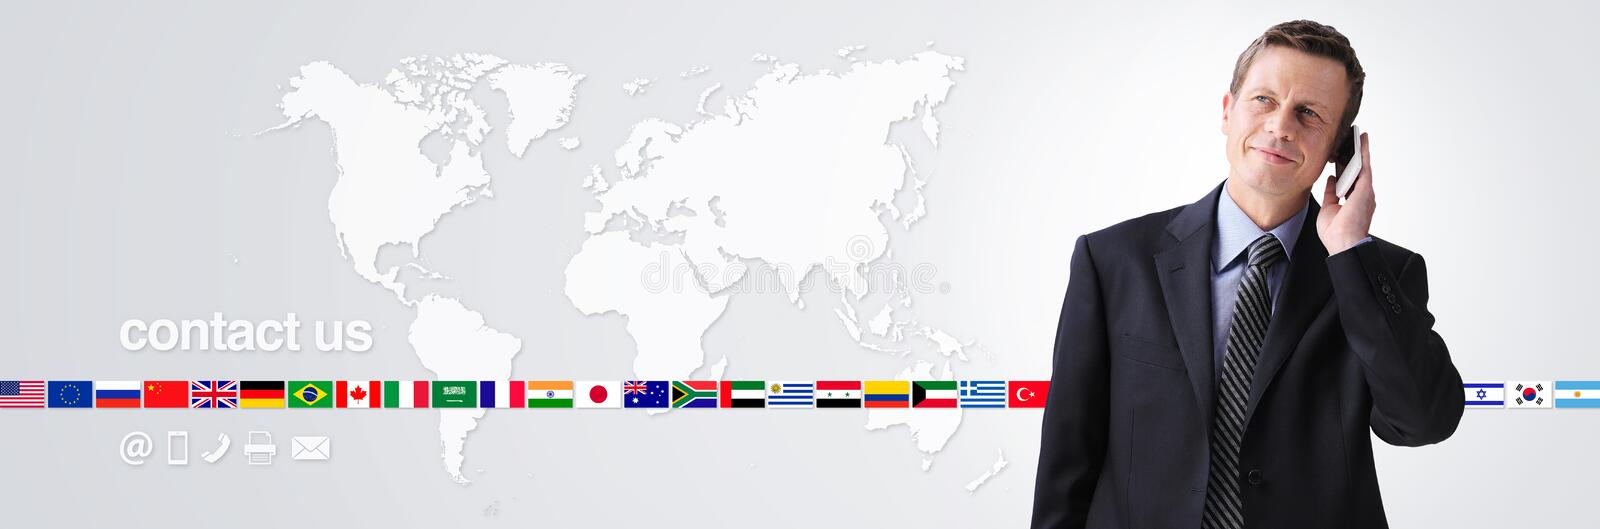 International contact us concept, businessman with mobile phone isolated on world map background, flags icons and contact symbols. Web banner and copy space stock image